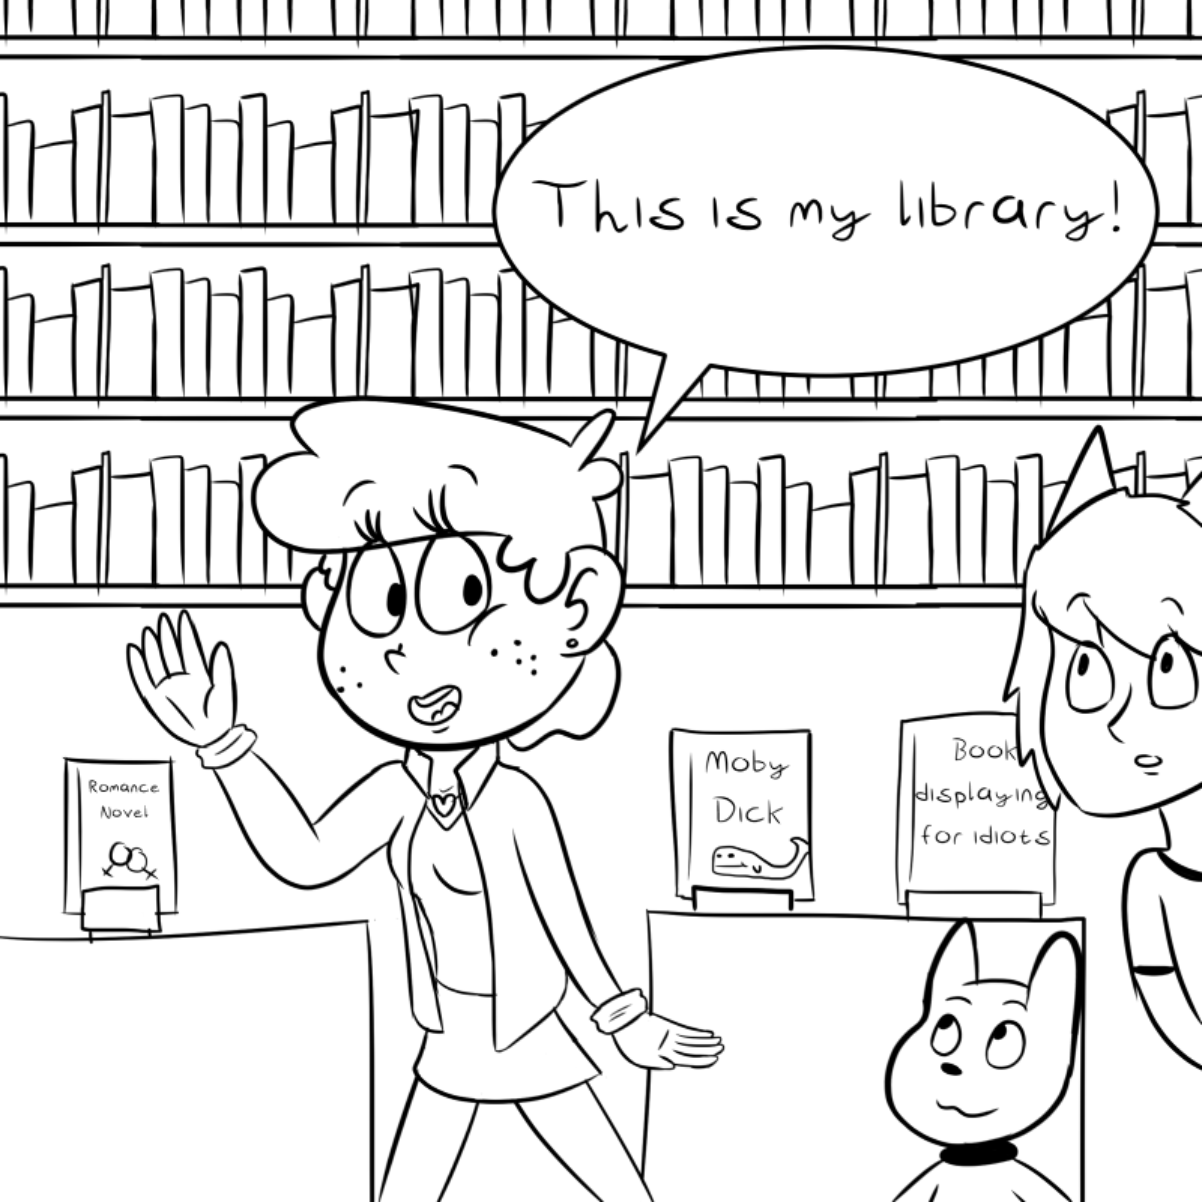 First panel in Tour drawn in our free online drawing game